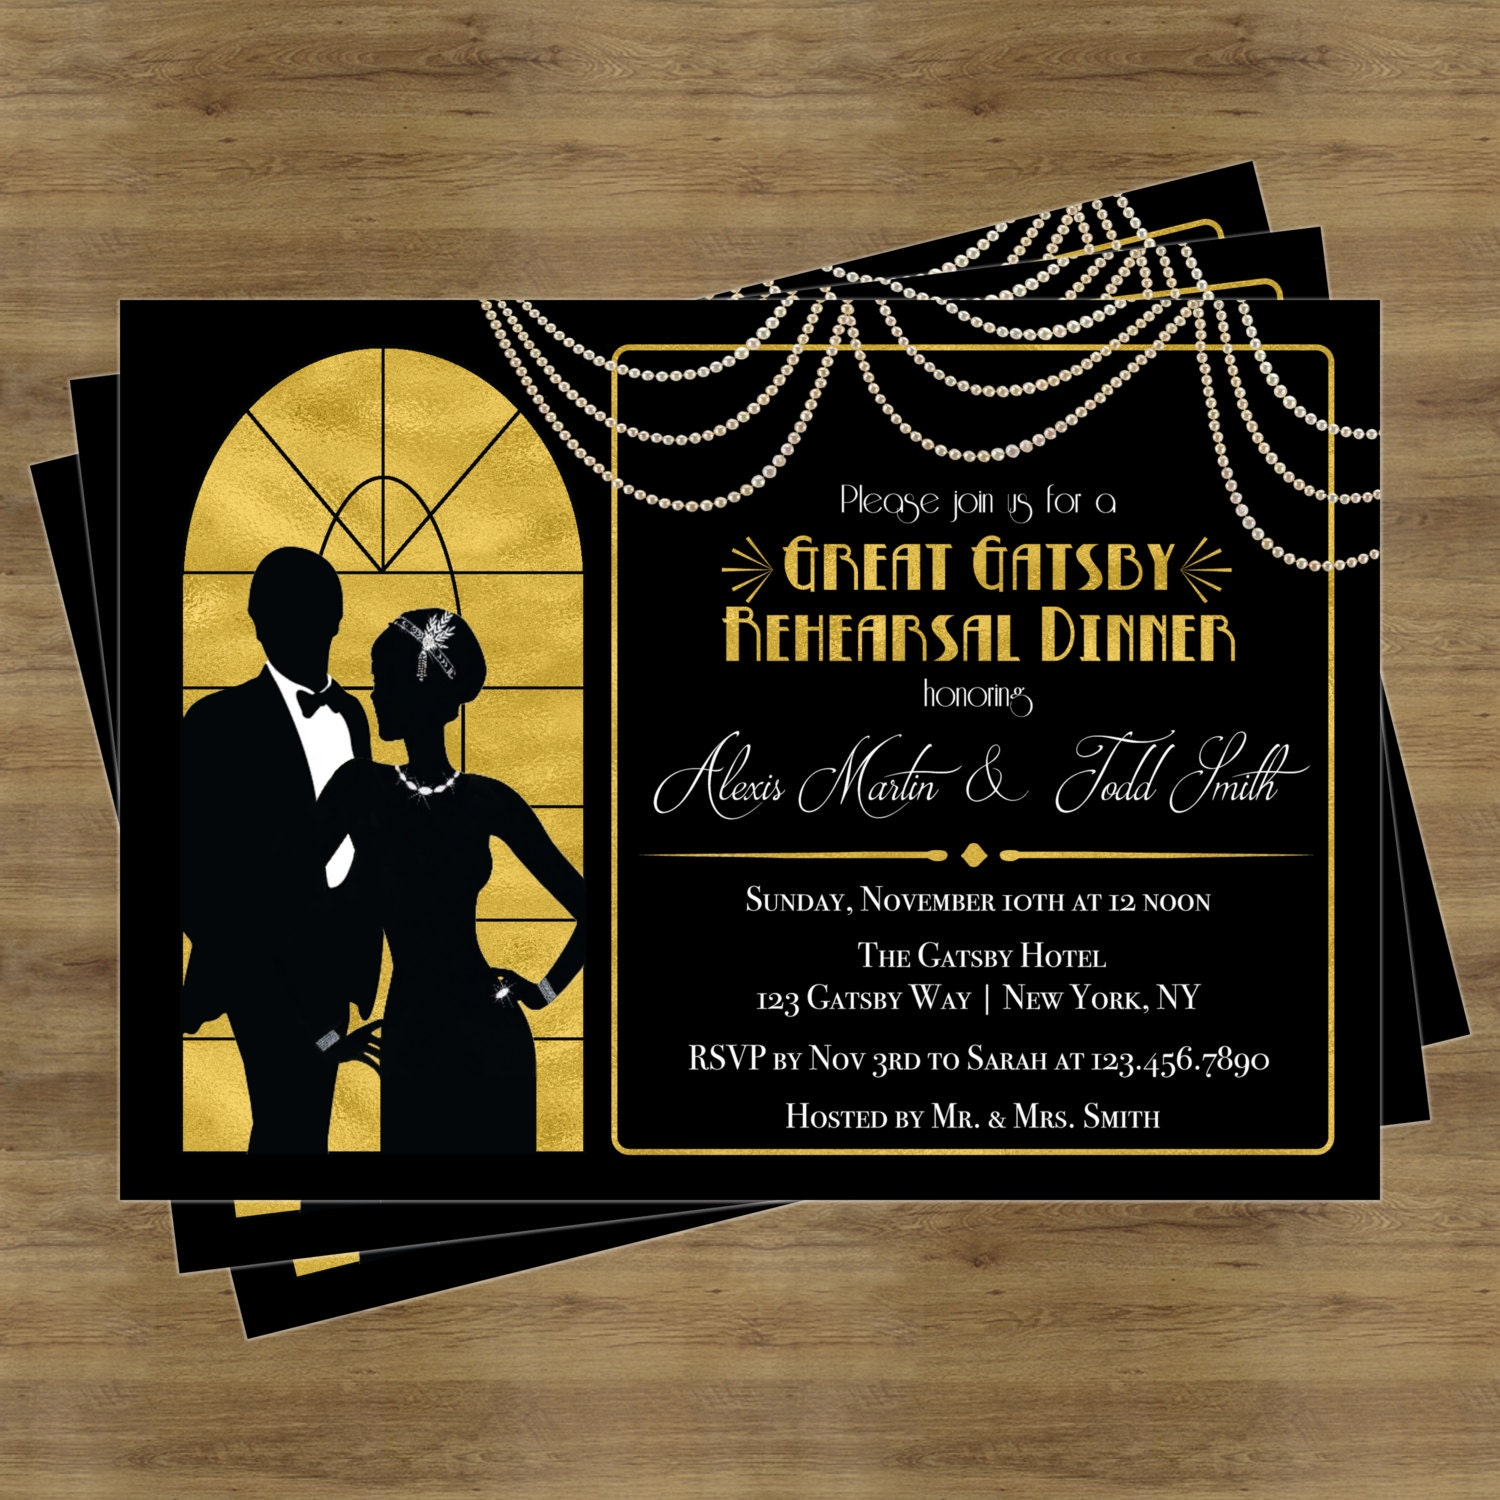 Gatsby Themed Wedding Invitations as luxury invitations example